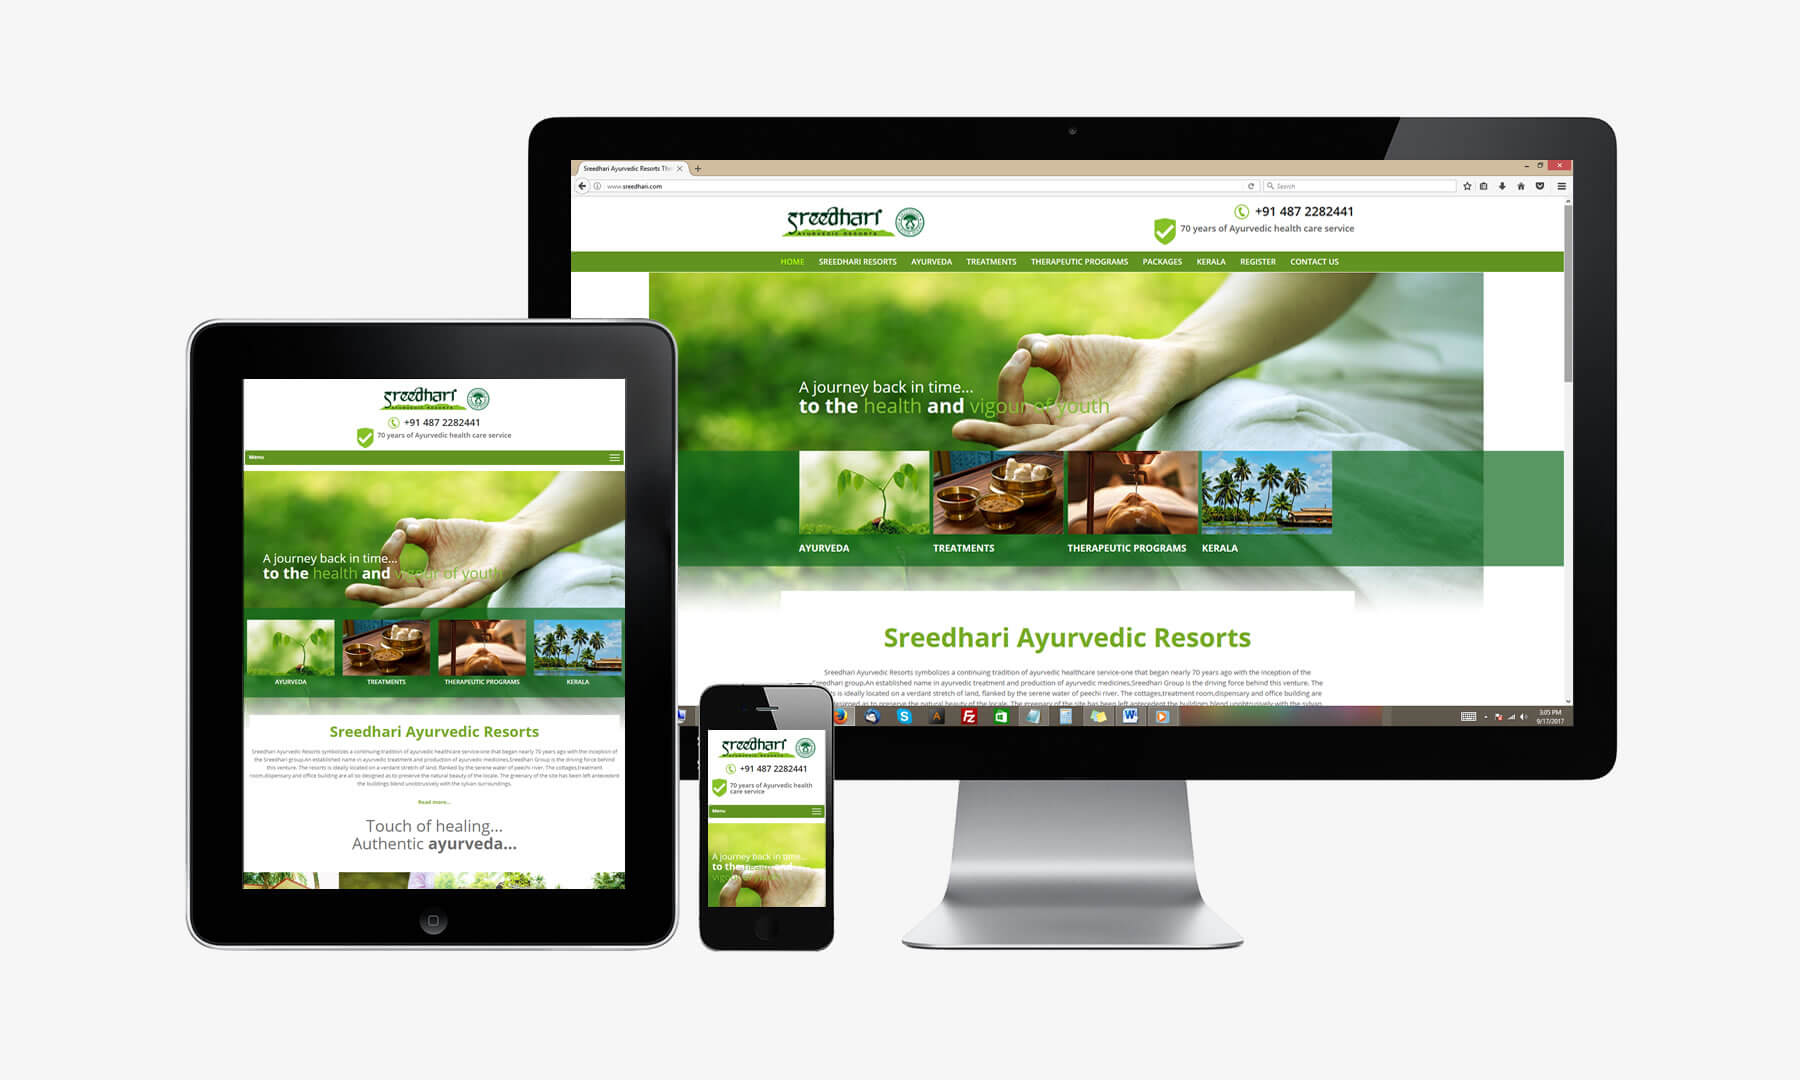 Kerala freelance web design for Sreedhari Ayurvedic Resorts